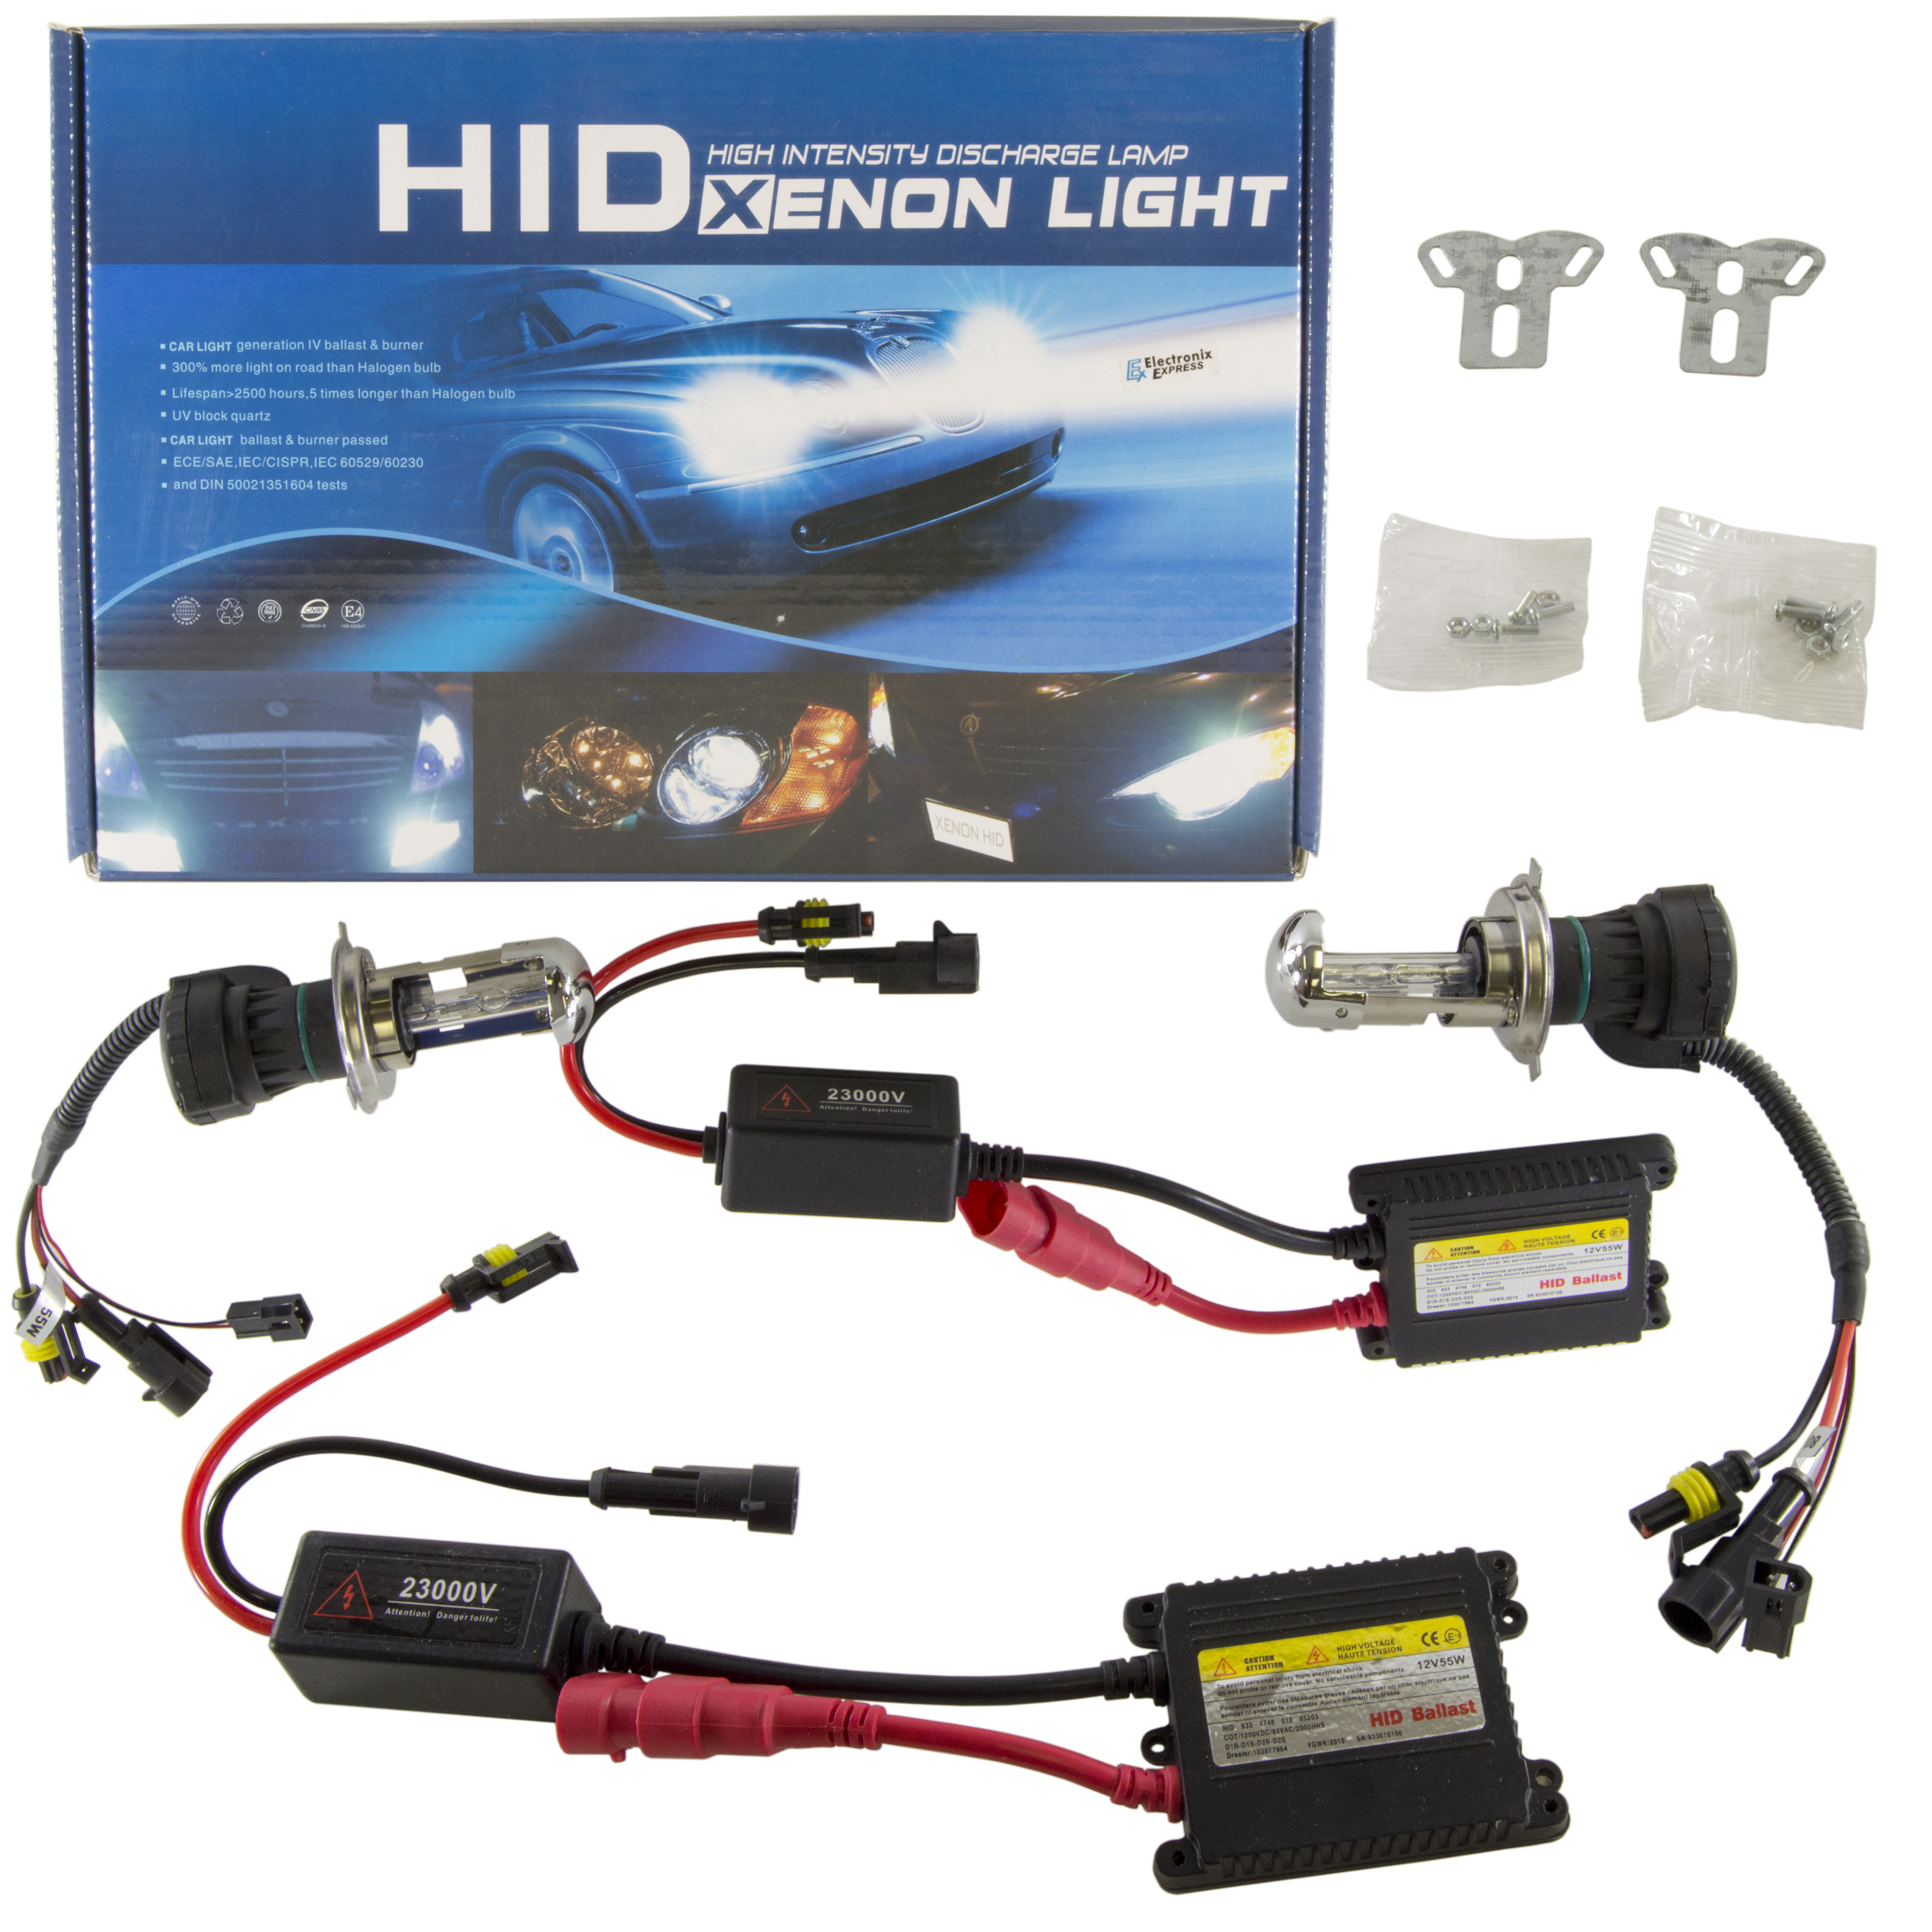 Xenon Hid High Intensity Discharged Conversion Kit Manual Guide